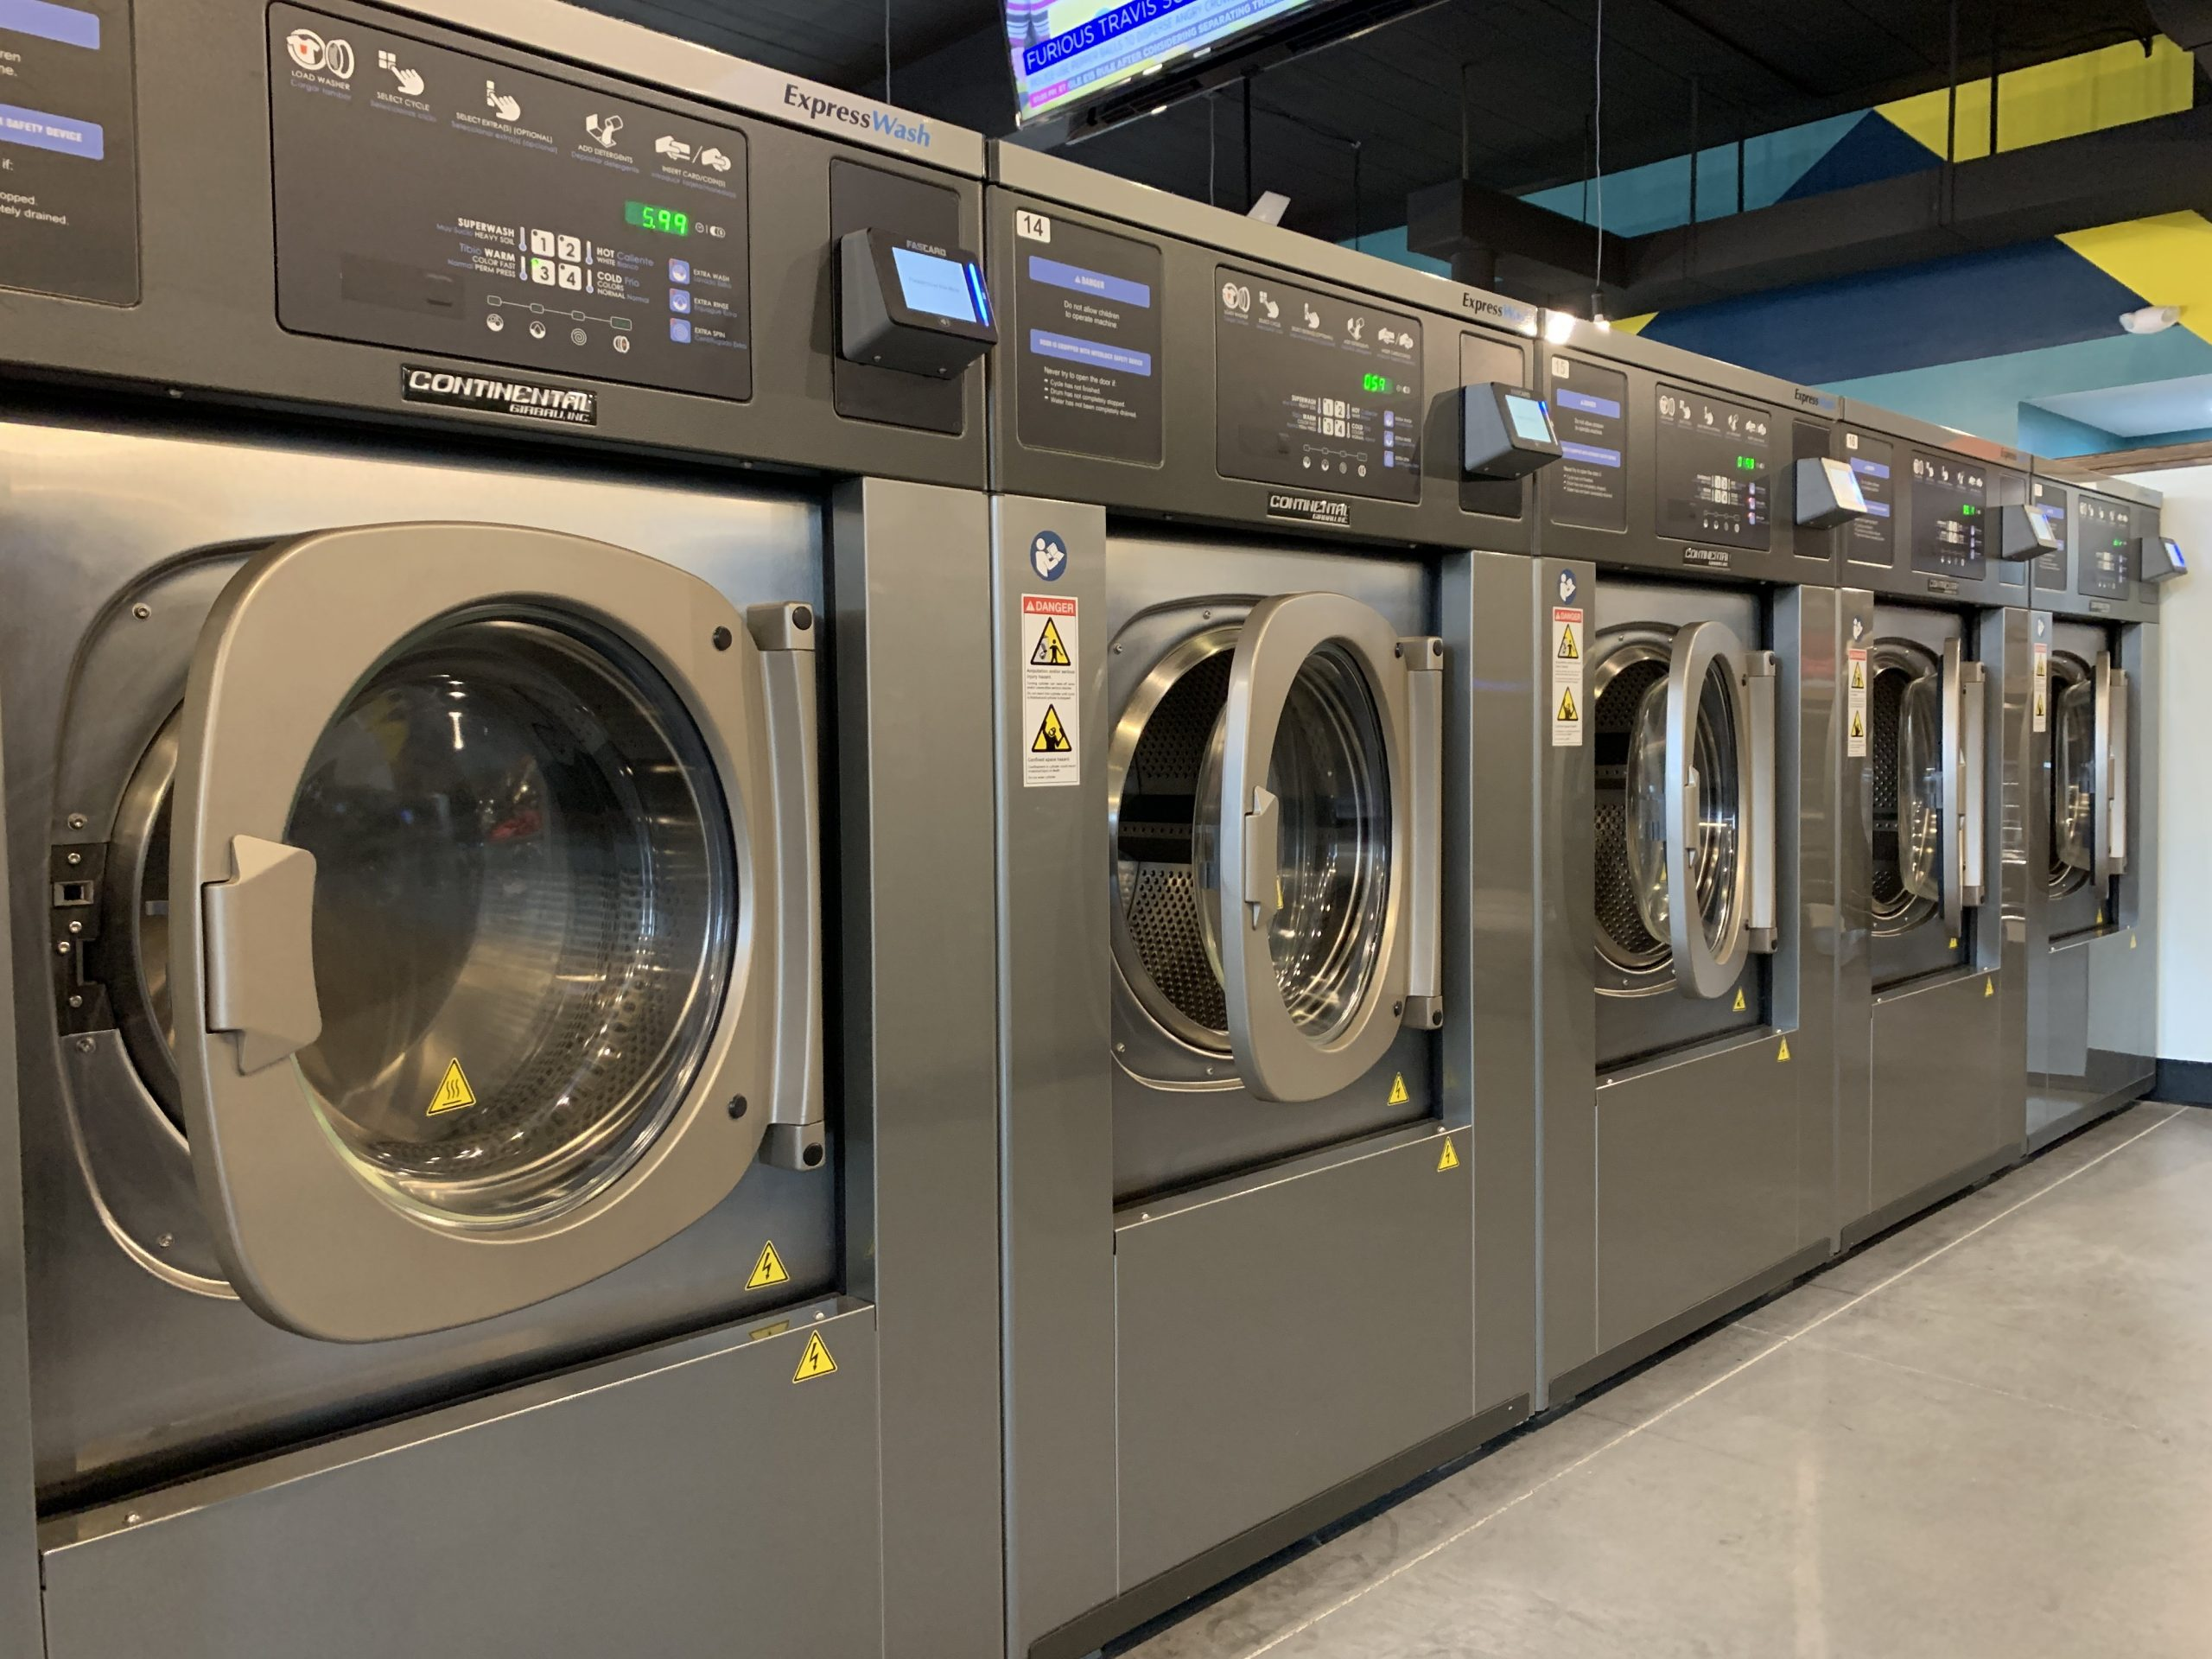 Laundromat City houses 10 EH040X Vended Washers